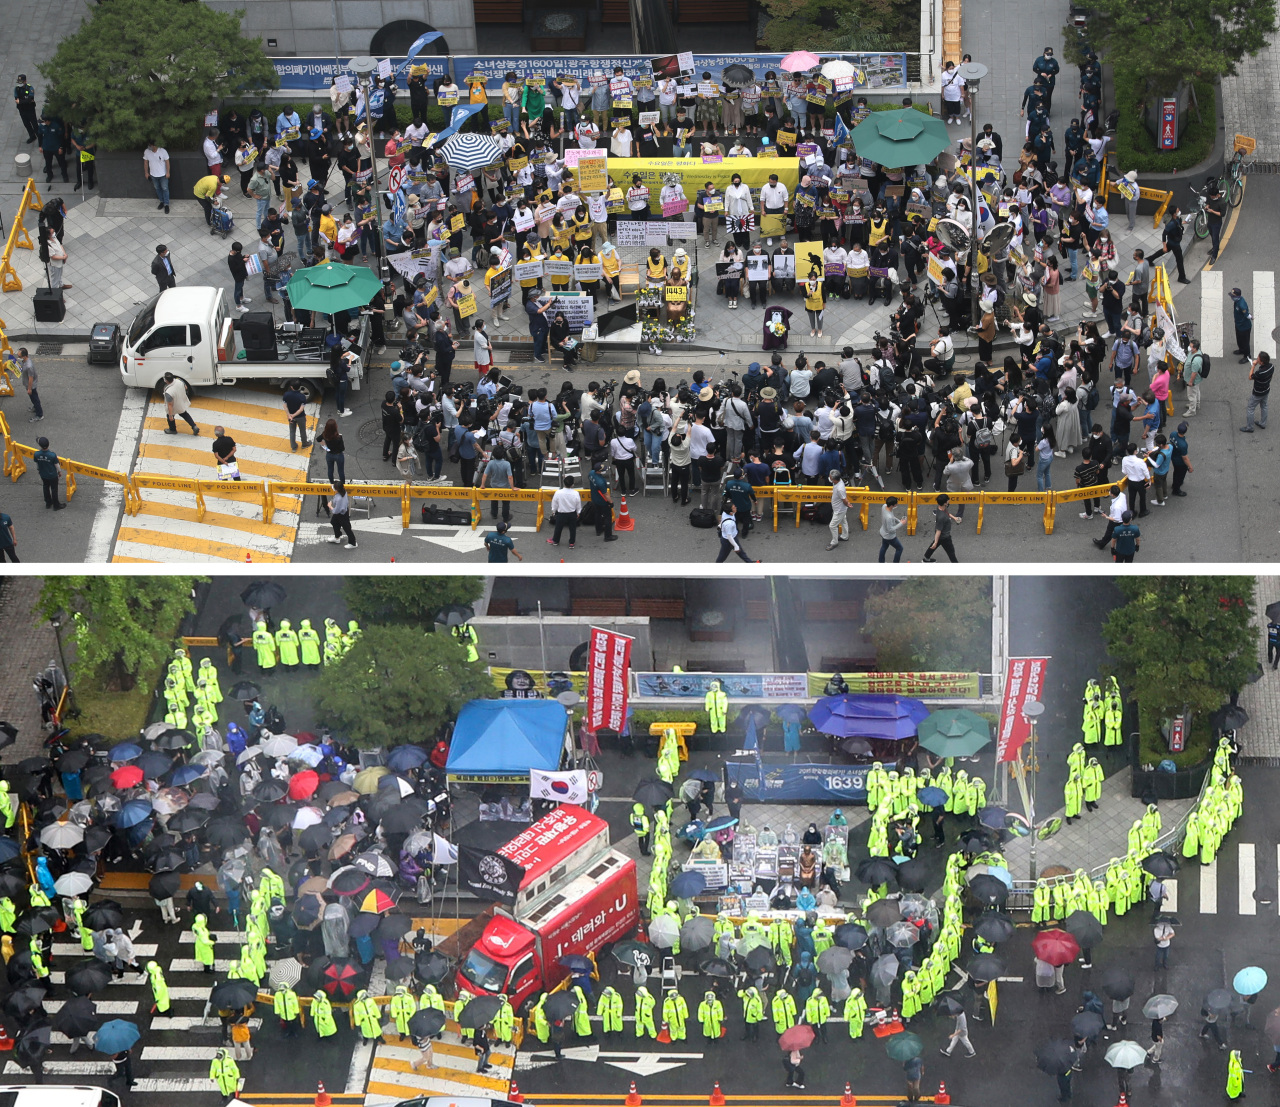 Two rallies take place 10 meters apart near the former Japanese Embassy building in Seoul on Wednesday. The top photo shows the Korean Council for Justice and Remembrance for the Issues of Military Sexual Slavery by Japan, waging its 1,445th weekly rally. The bottom photo shows the Freedom Union, which took over the spot where the survivor advocacy group had gathered for 28 years. (Yonhap)